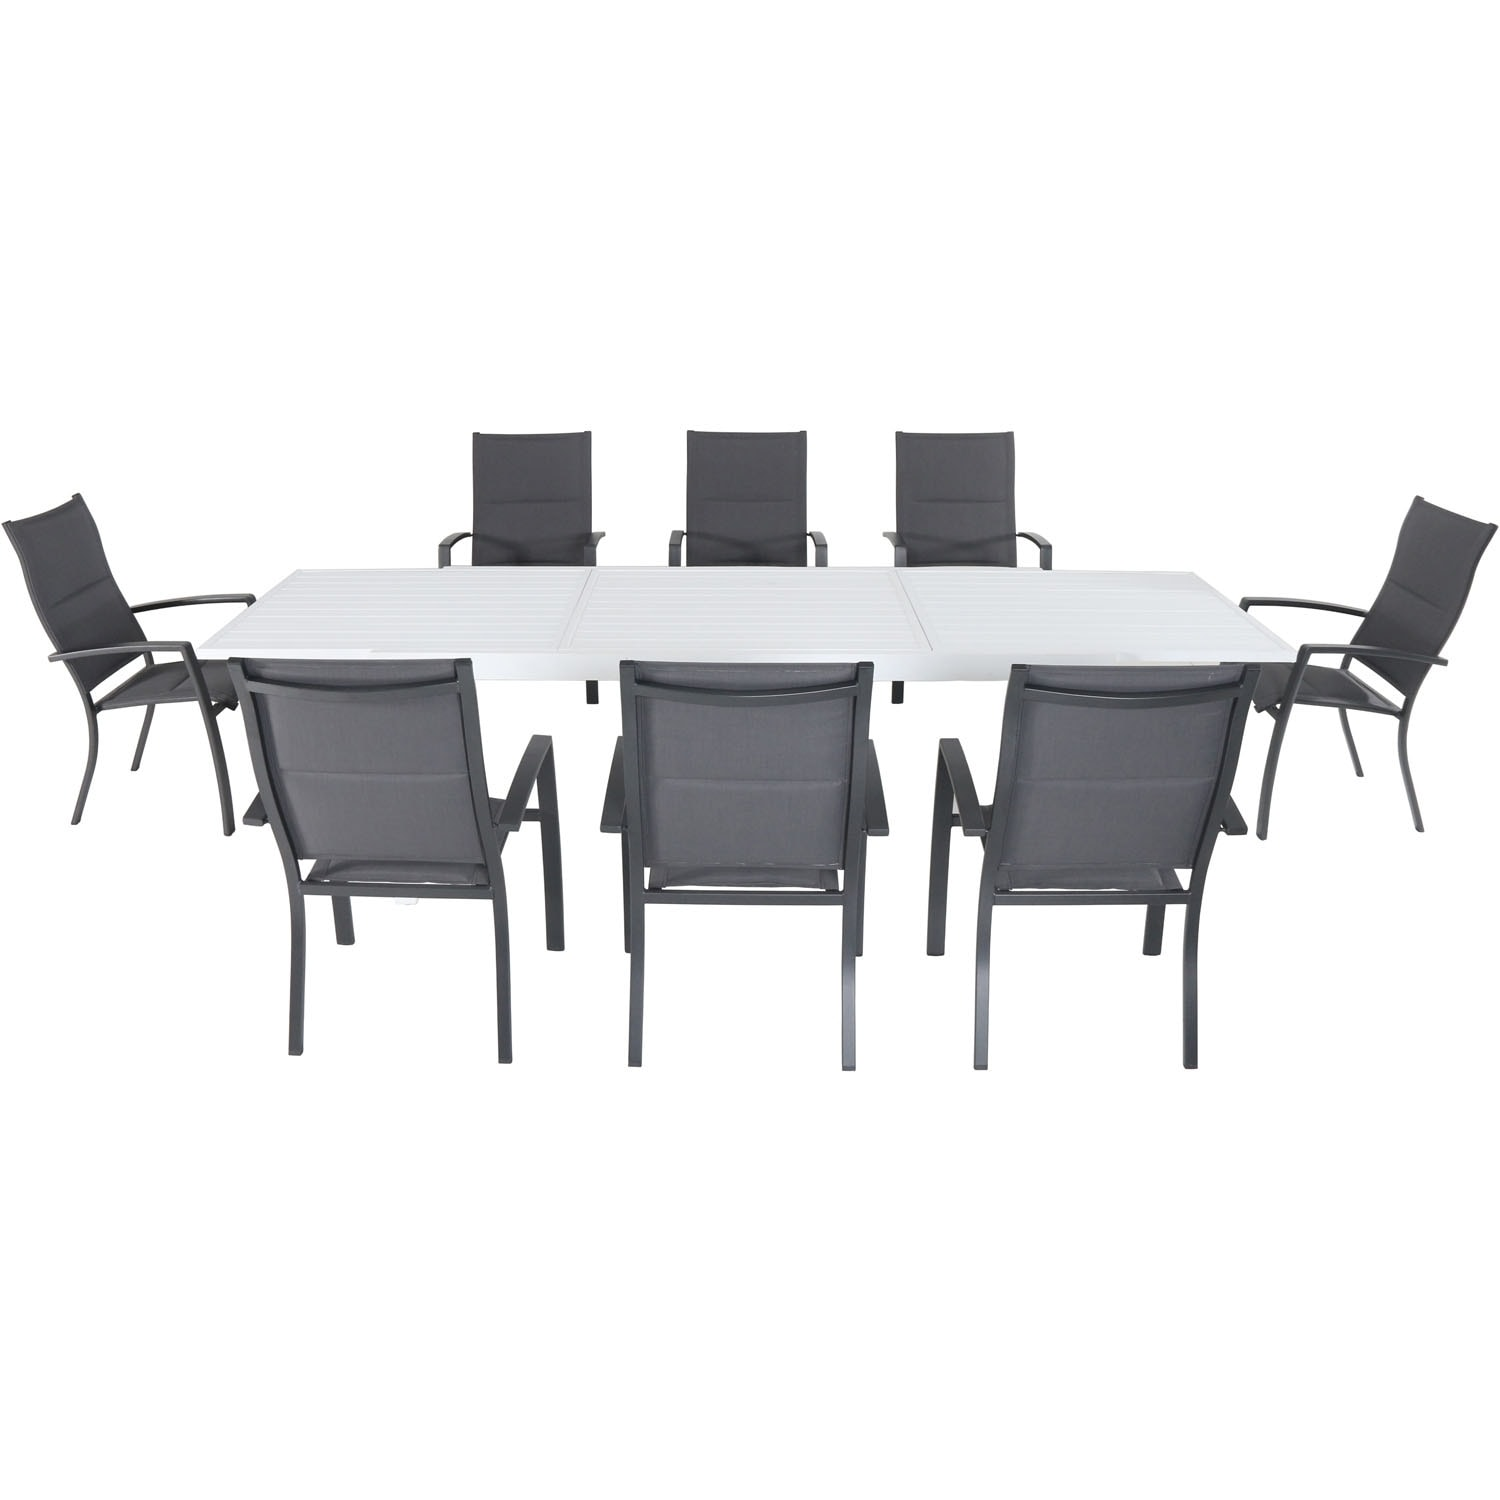 Cambridge Palermo 9-Piece Outdoor Dining Set with 8 Padded Sling Chairs in Gray and a 40 x 118 Expandable Dining Table